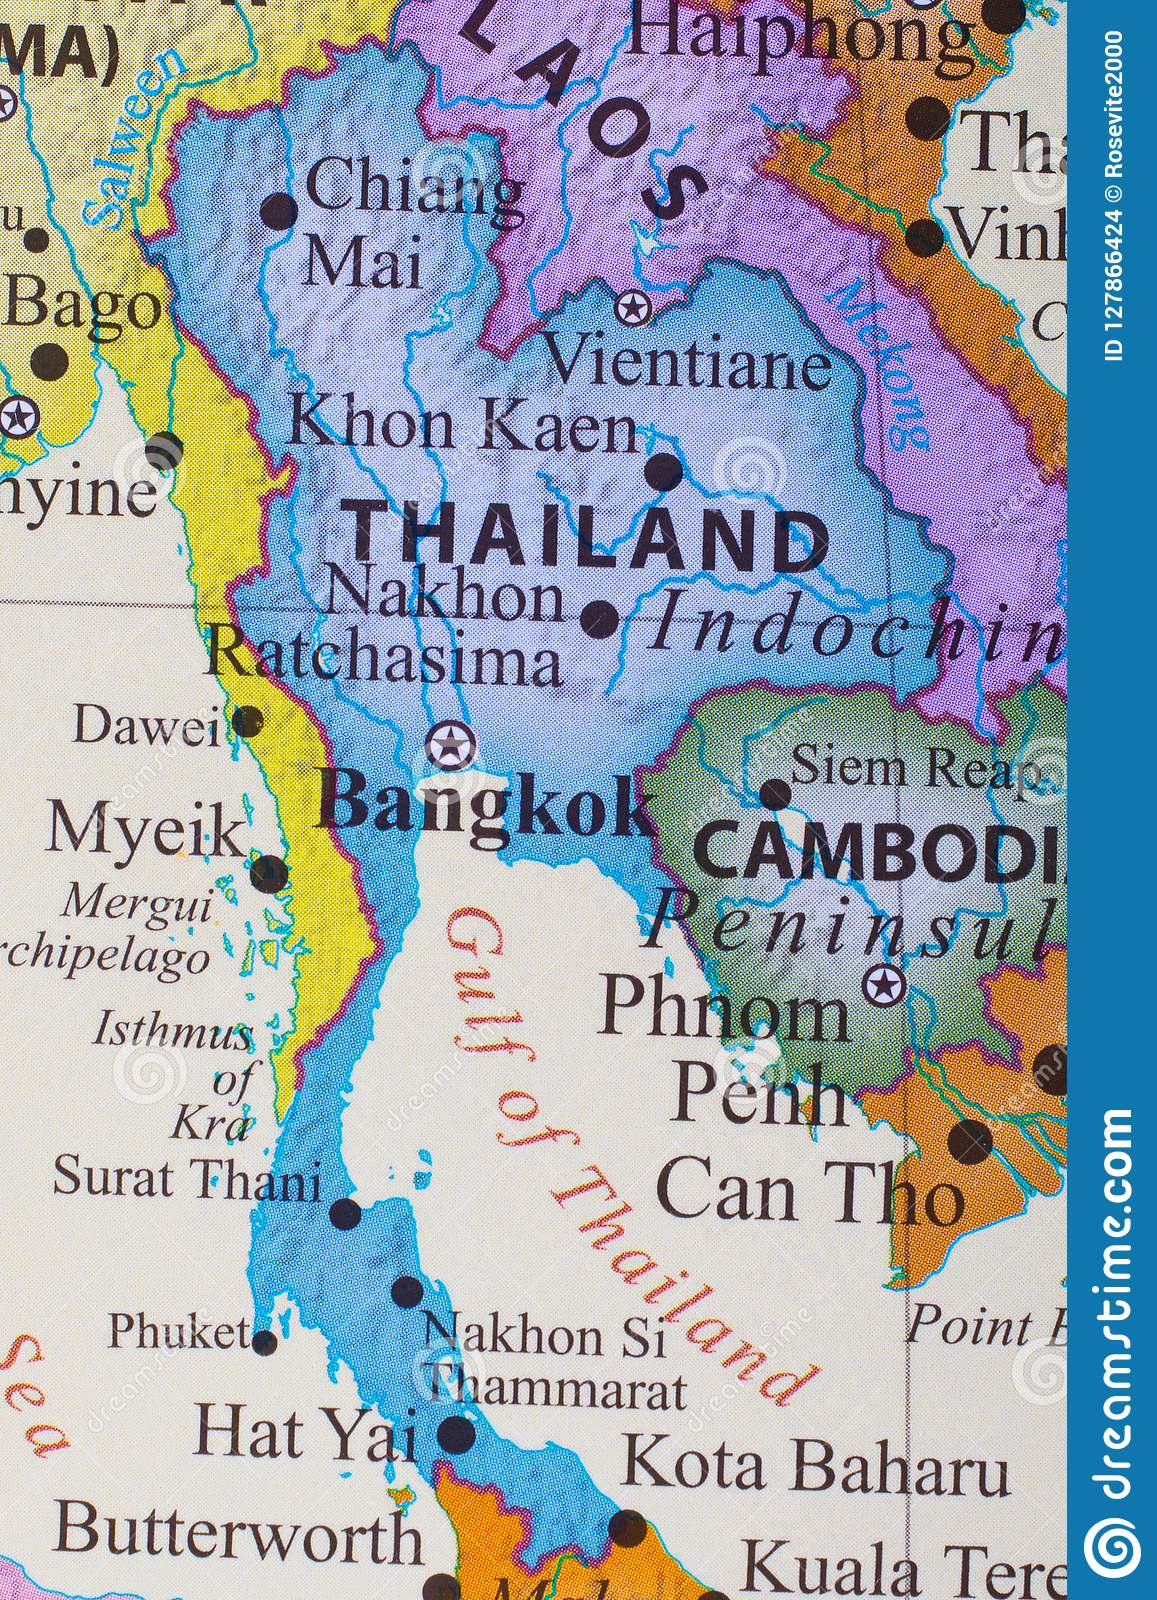 Map of Thailand stock photo. Image of tropical, city - 127866424 Map Of Thailan on map of sudan, map of namibia, map of bahrain, map of thaddeus, map of algeria, map of indonesia, map of thailand, map of hungary, map of thaiand, map of ethiopia, map of thaland, map of uzbekistan, map of armenia, map of pakistan, map of togo, map of mongolia, map of australia with cities, map of morocco, map of zambia, map of philippines,